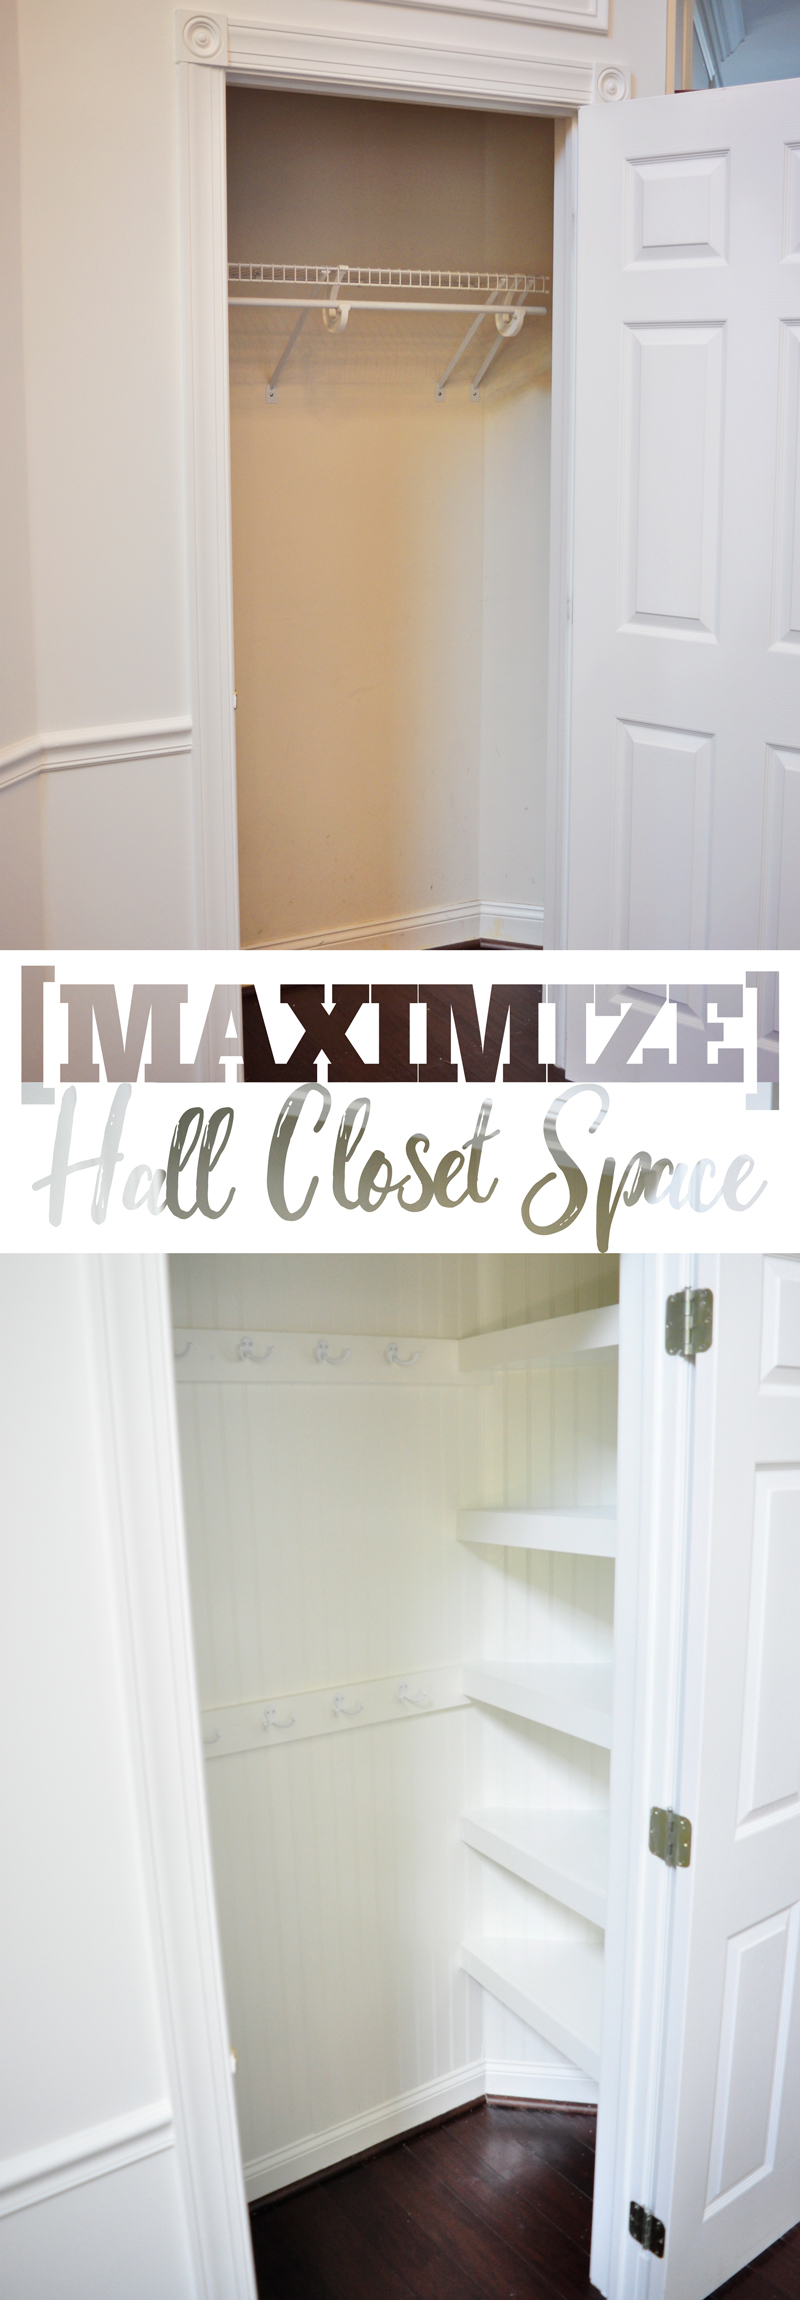 Maximize your hall closet storage by transforming a builder basic inefficient closet space into a space packed with brilliant and space-savvy storage and organizing! How-to on Remodelaholic.com